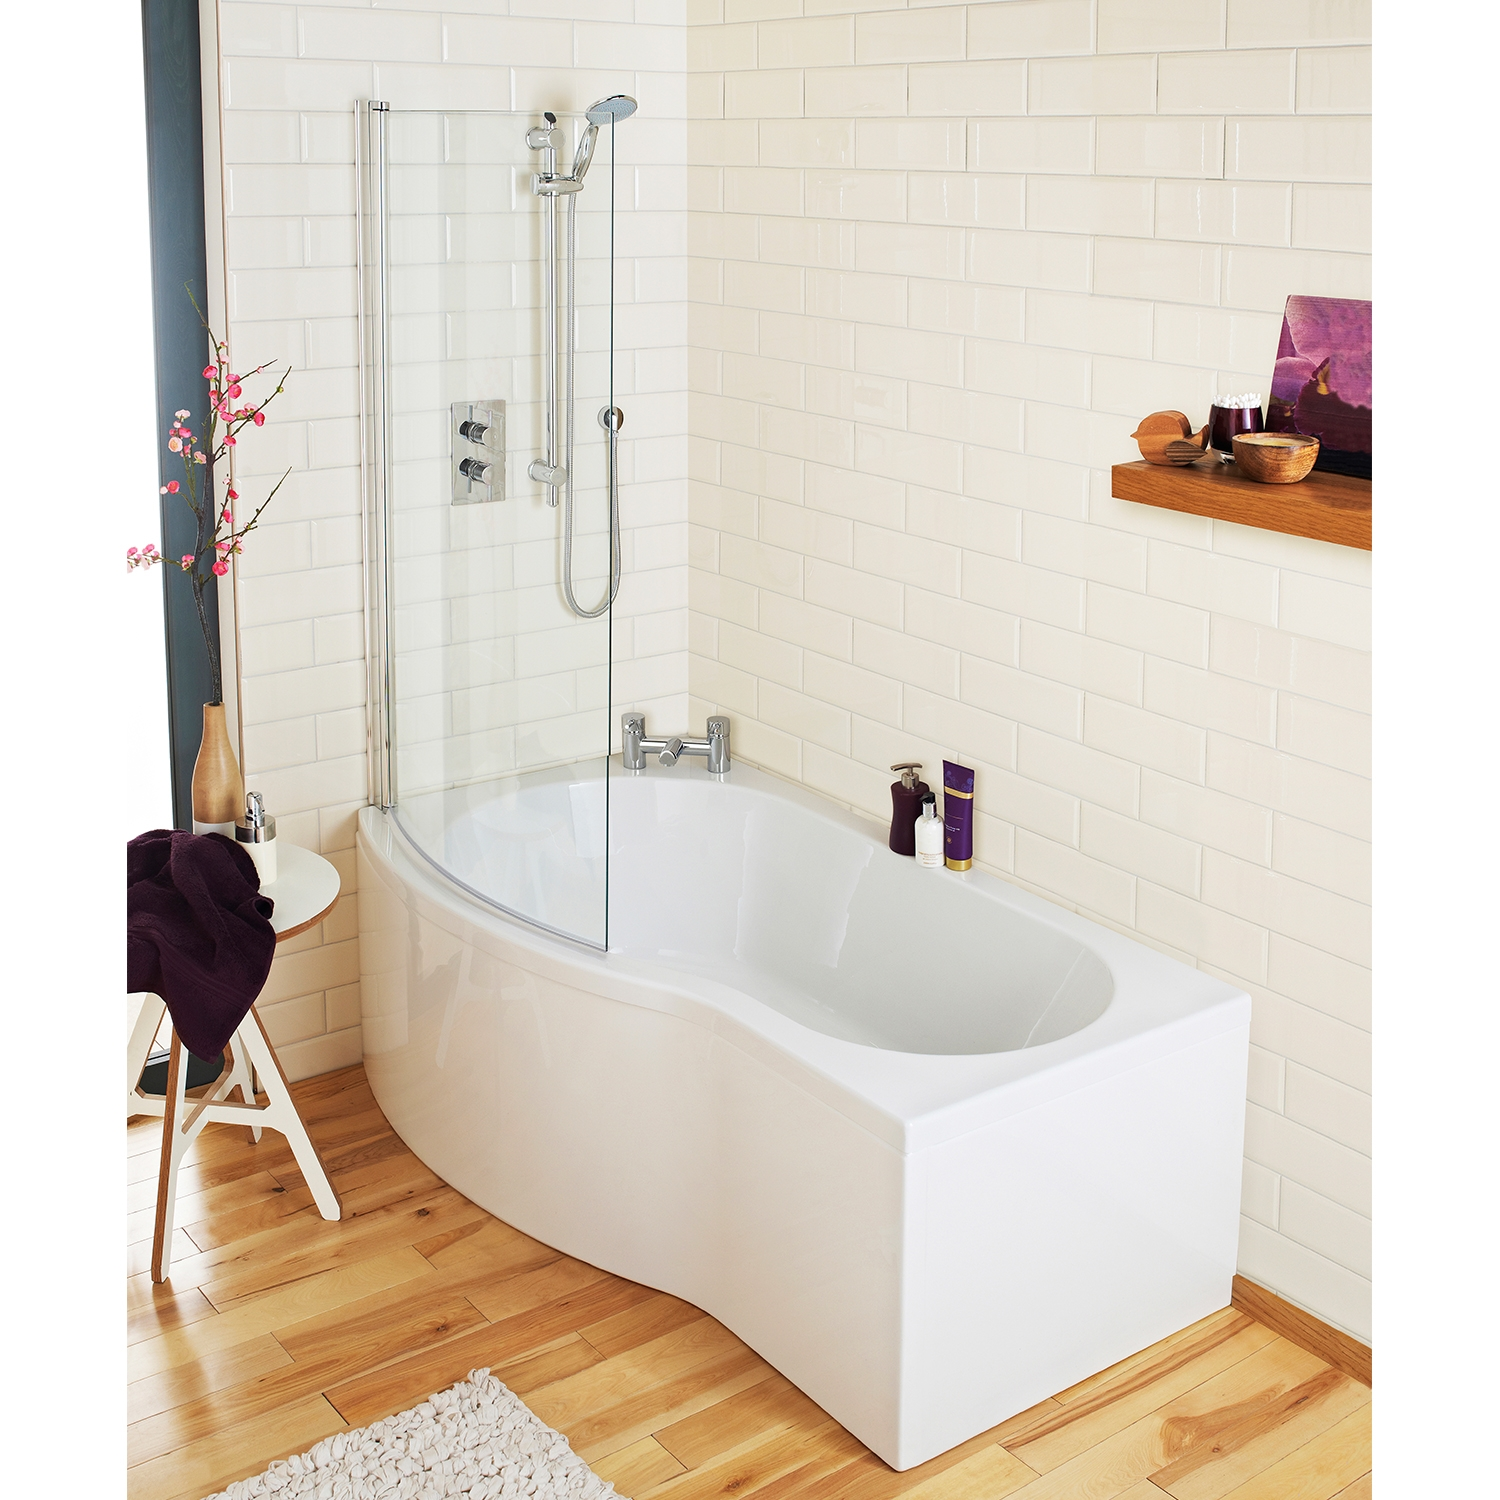 Premier b-Shaped Shower Bath Front Panel and Screen 1500mm x 735mm/800mm Left Handed